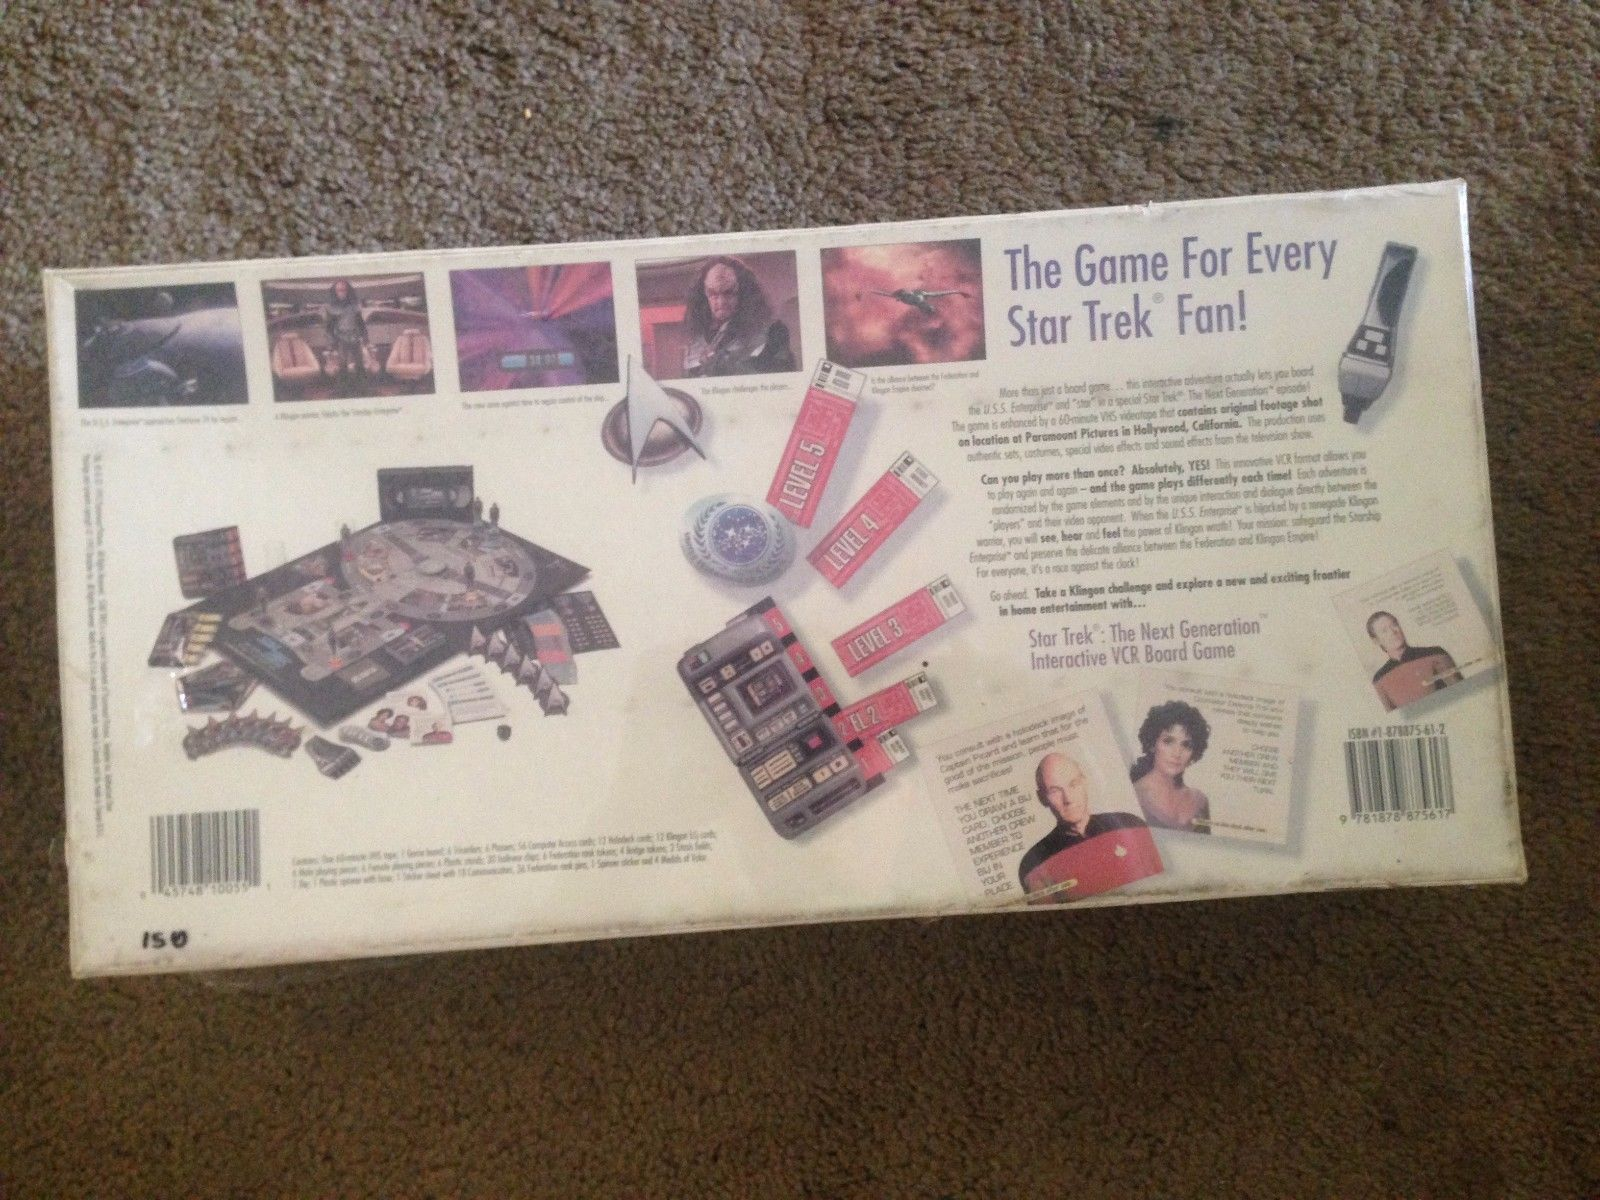 Star Trek : The Next Generation - Interactive VCR Board Game - Paramount 1993